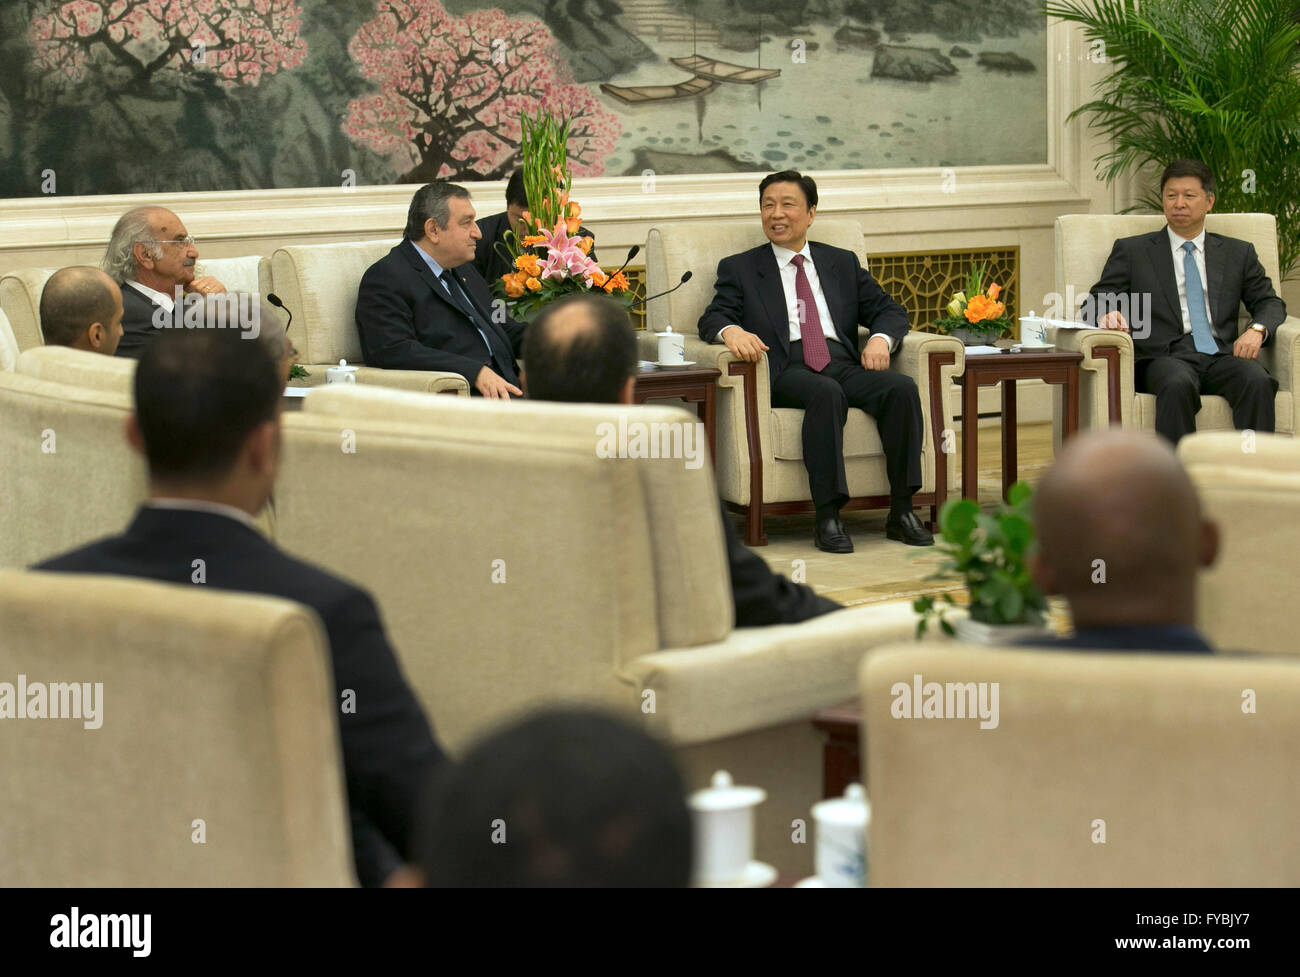 (160425) -- BEIJING, April 25, 2016 (Xinhua) -- Chinese Vice President Li Yuanchao meets with political leaders - Stock Image